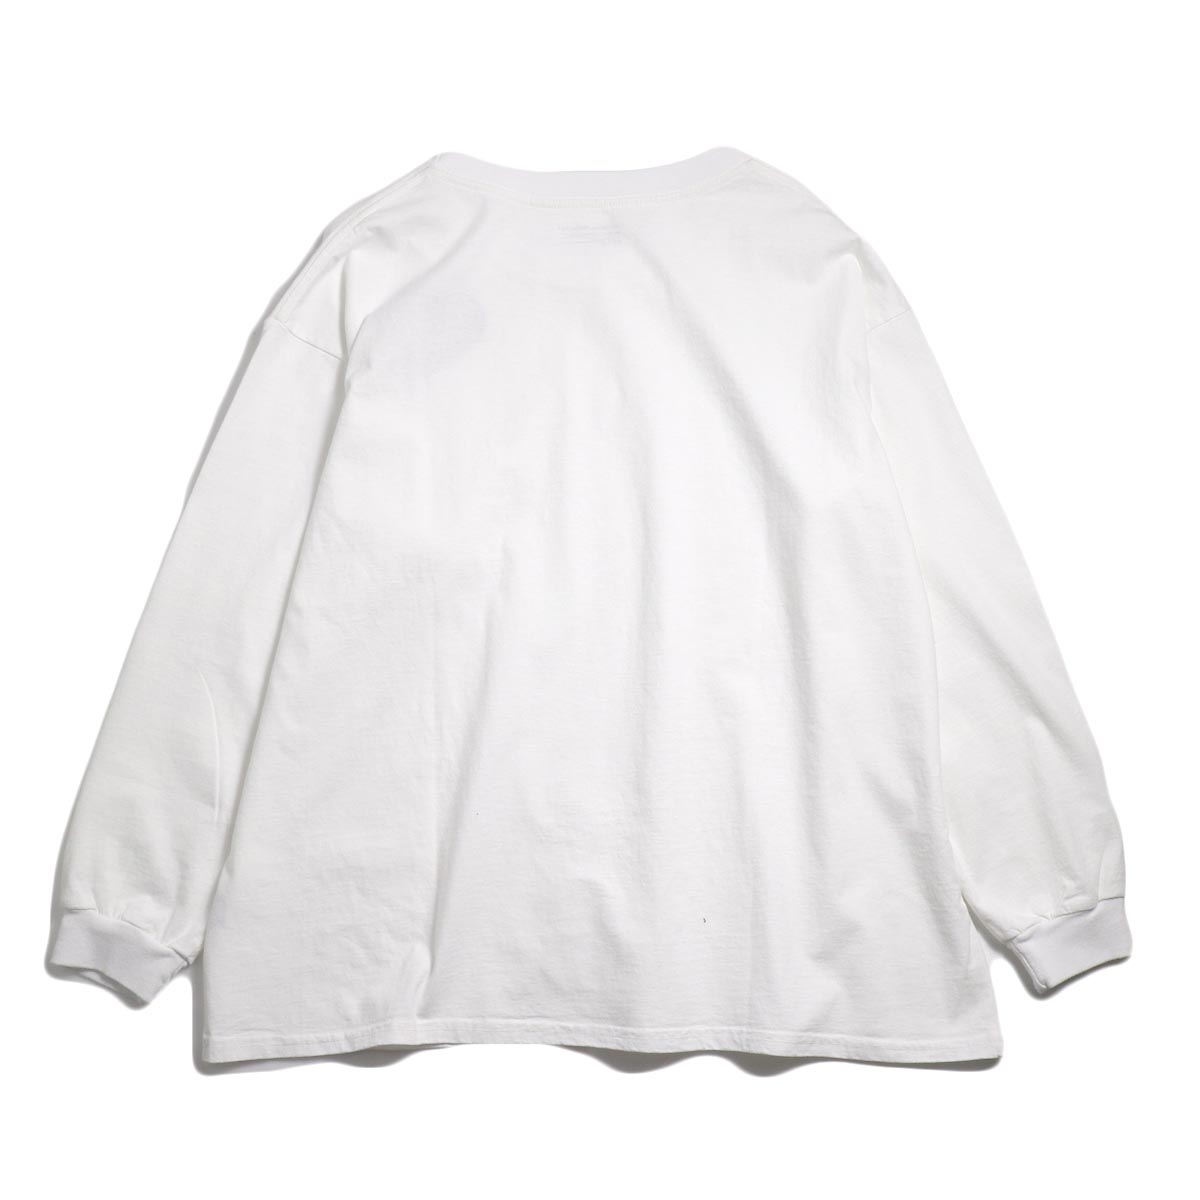 UNIVERSAL PRODUCTS / Heavy Weight L/S T-Shirt -White 背面